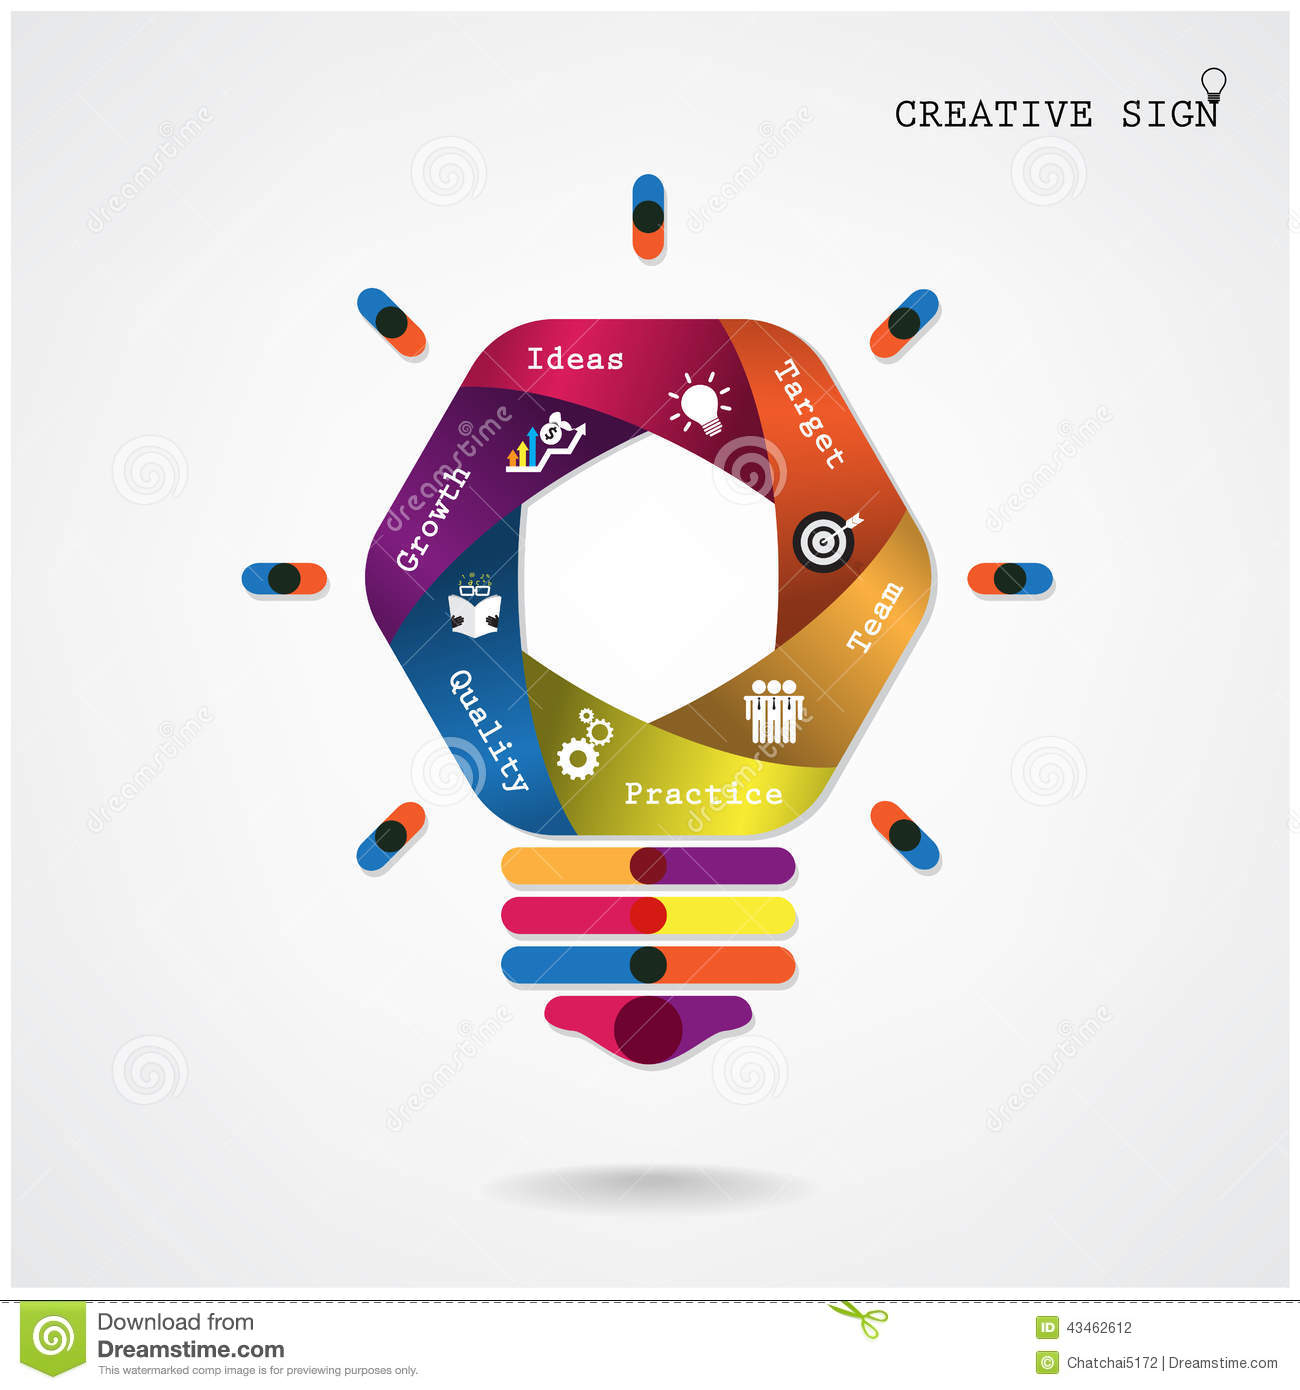 creative light bulb idea concept background - Poster Design Ideas